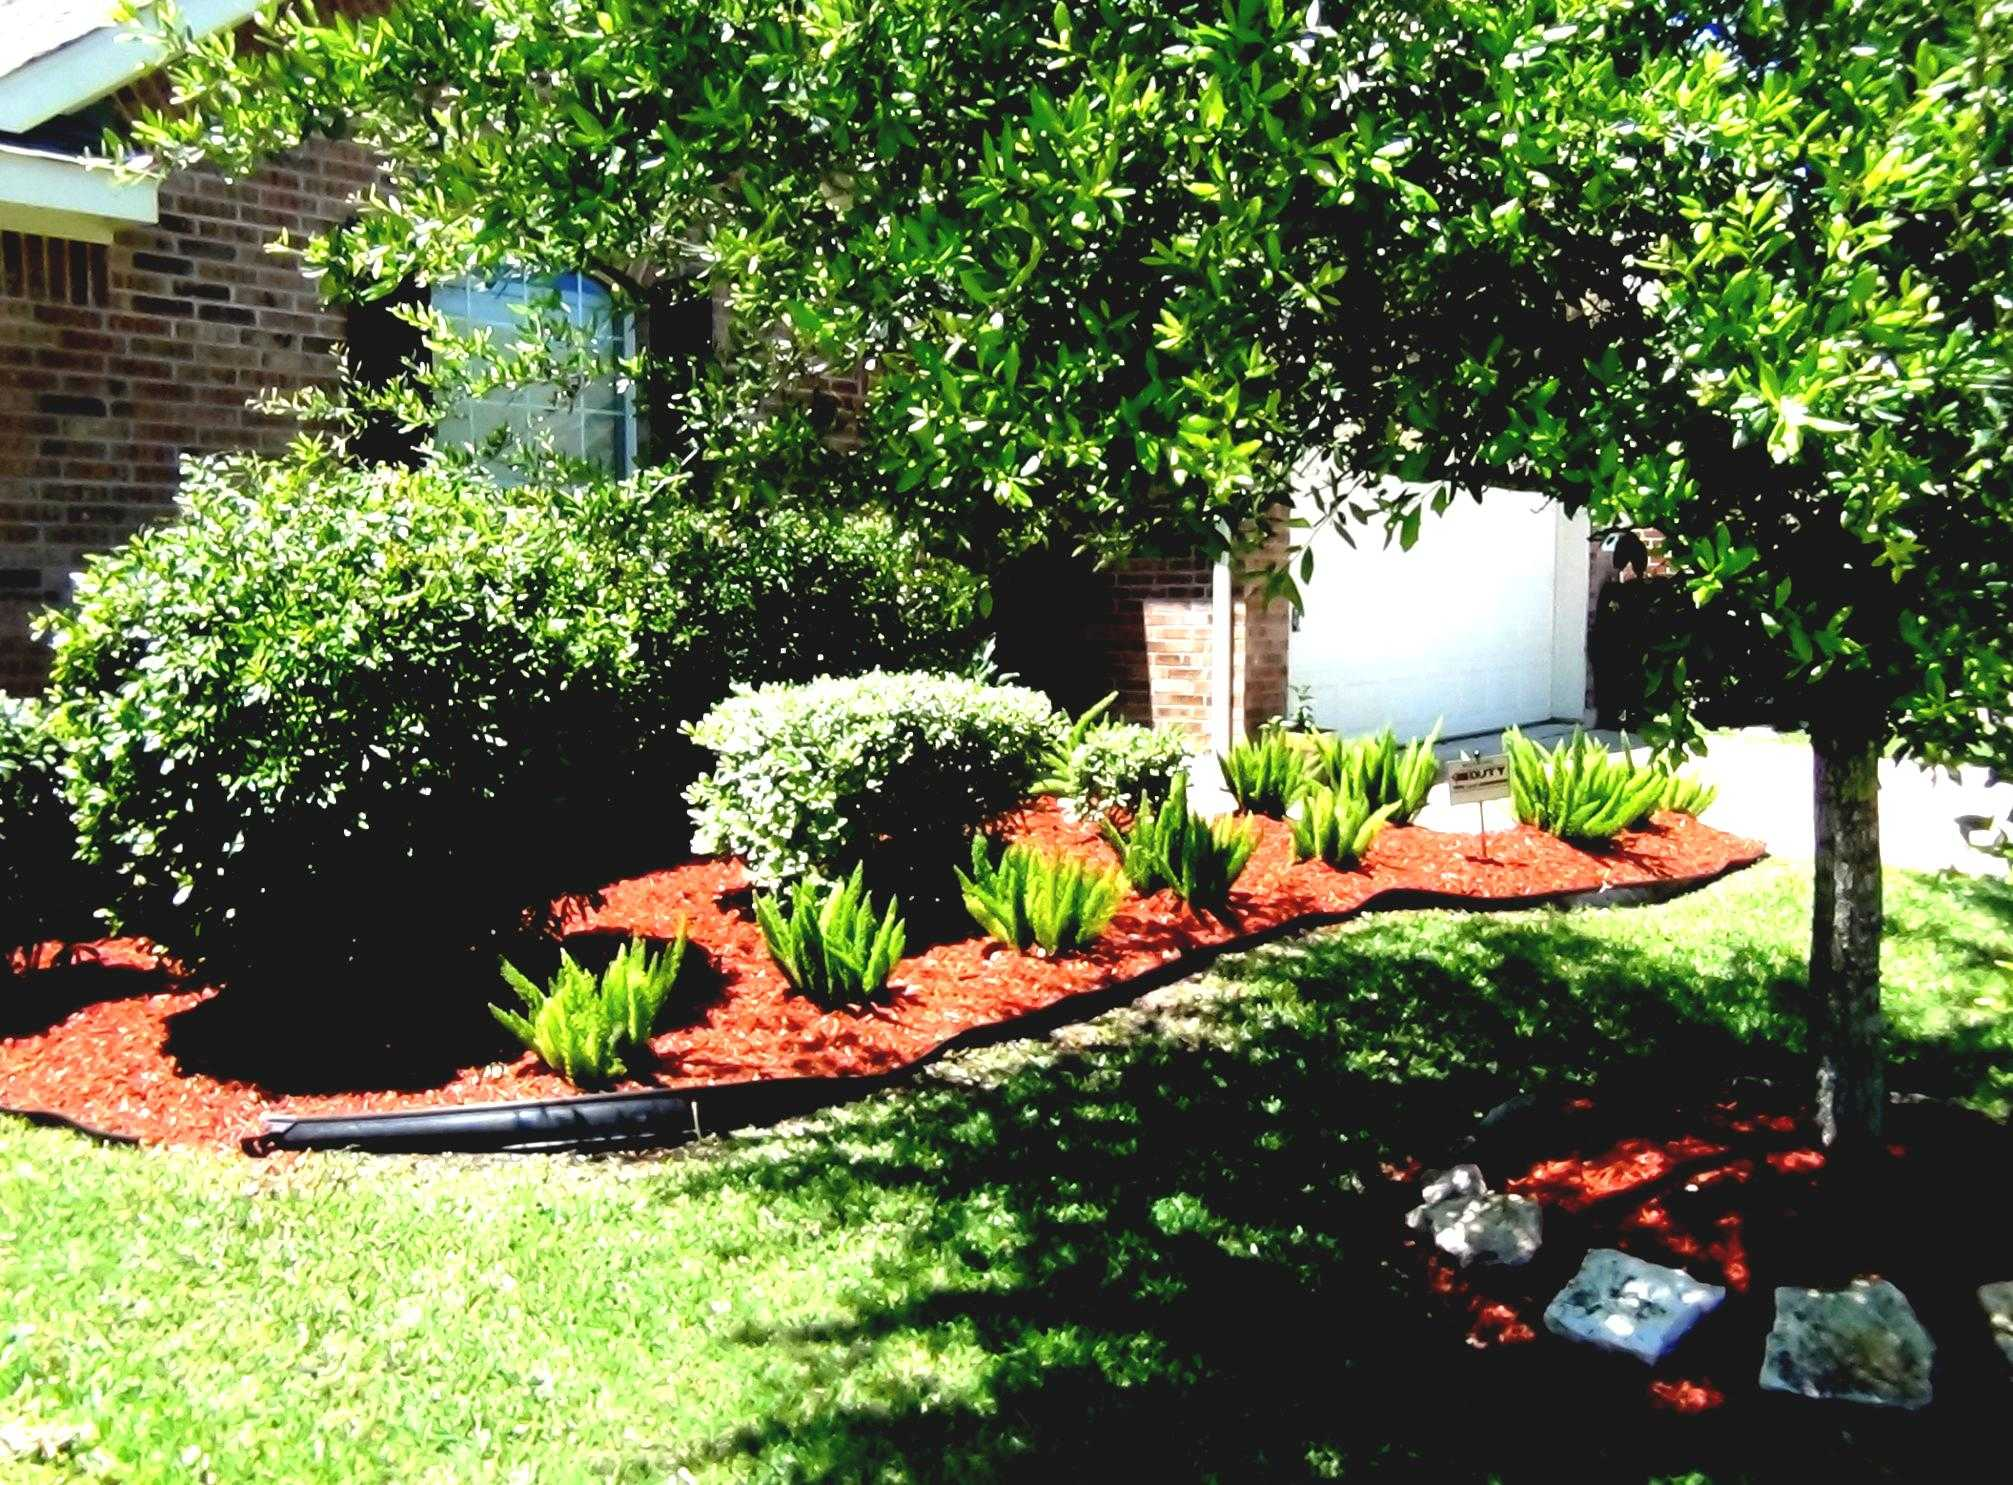 mesmerizing-landscaping-using-mulch-for-popular-simple-ideas-landscape-with-and-rocks-vs-stone-fabric-la